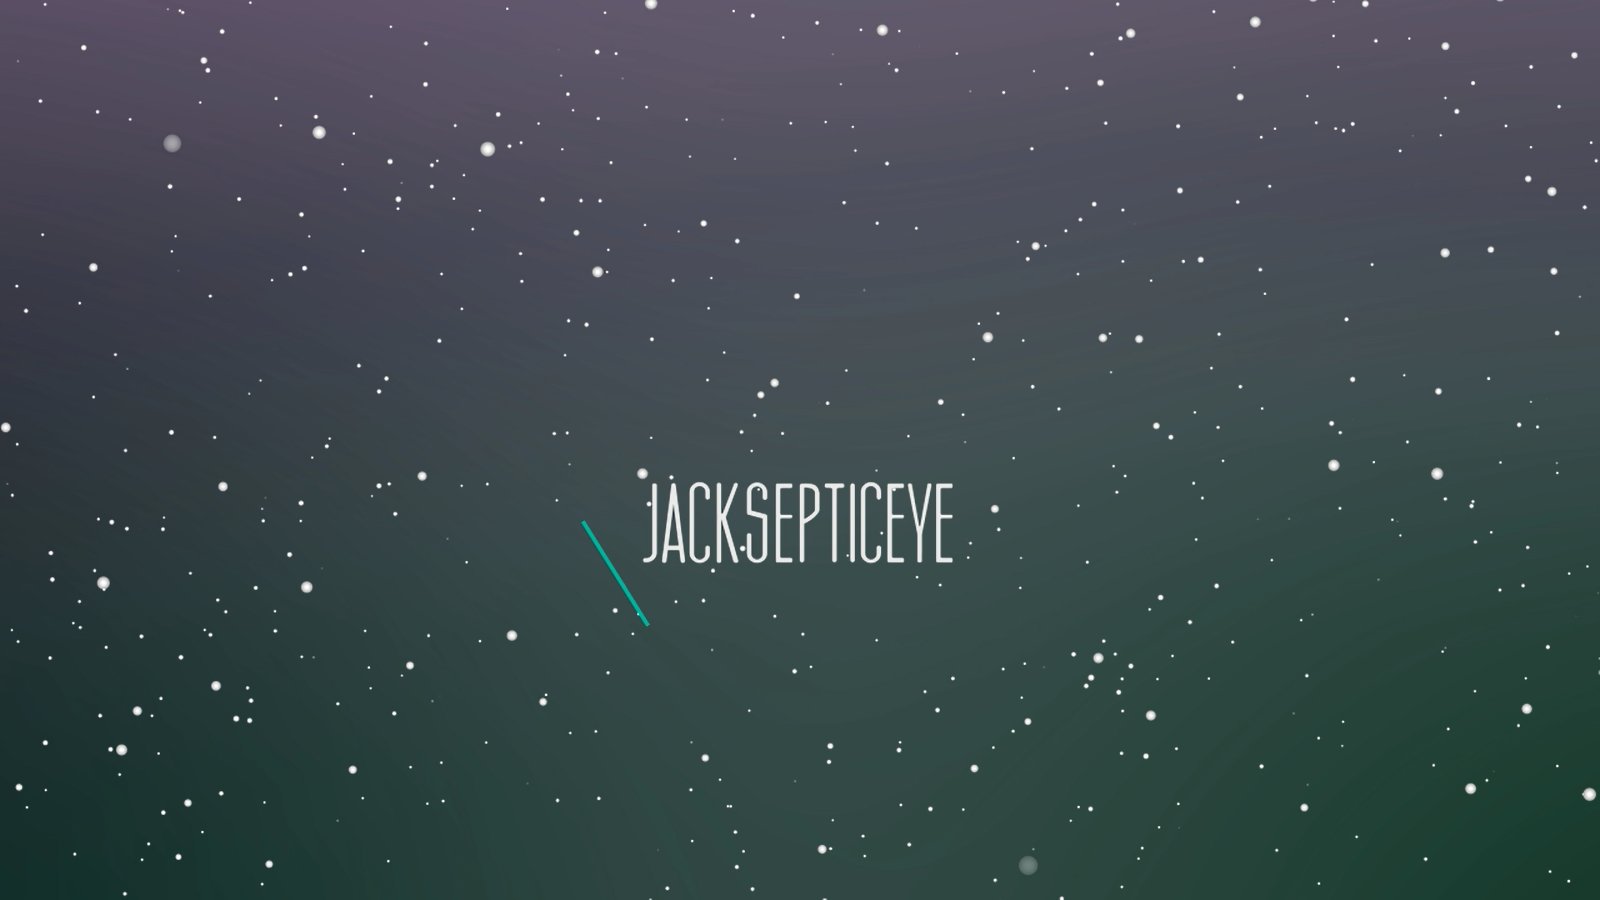 Download Jacksepticeye Wallpaper by JoeyTobie [1600x900] 50 1600x900